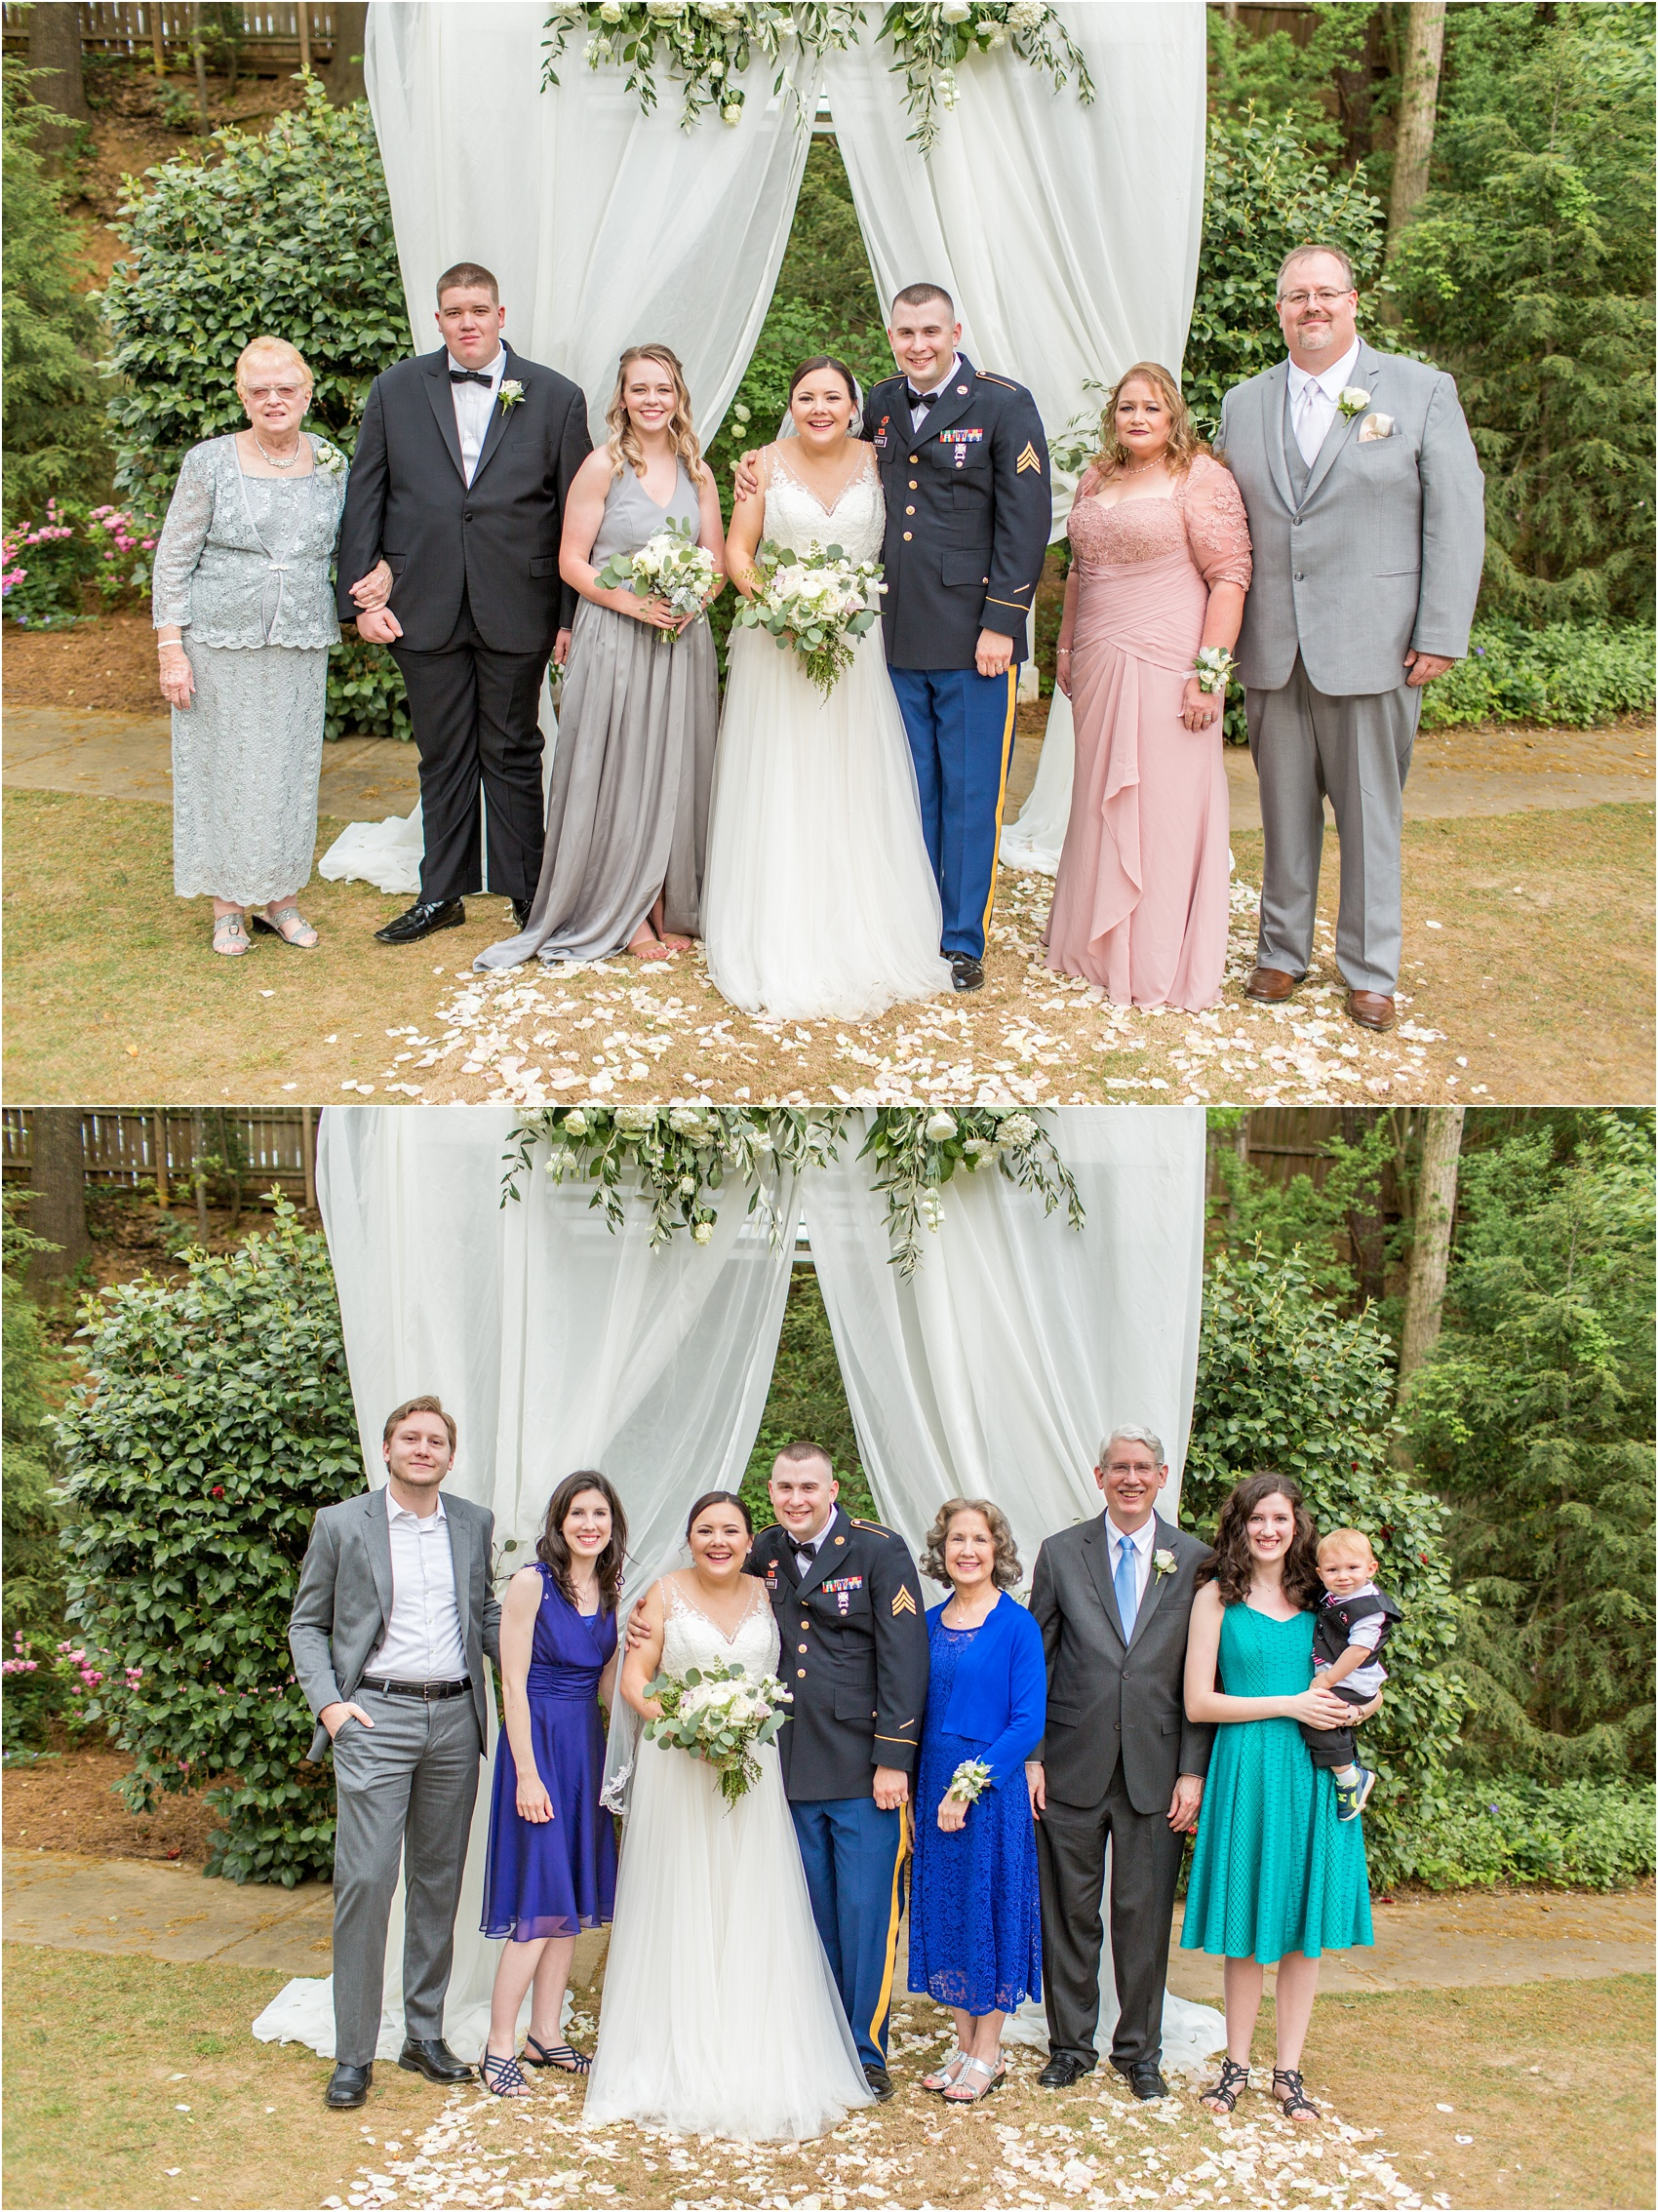 Savannah Eve Photography- Newton Wedding- Blog-103.jpg